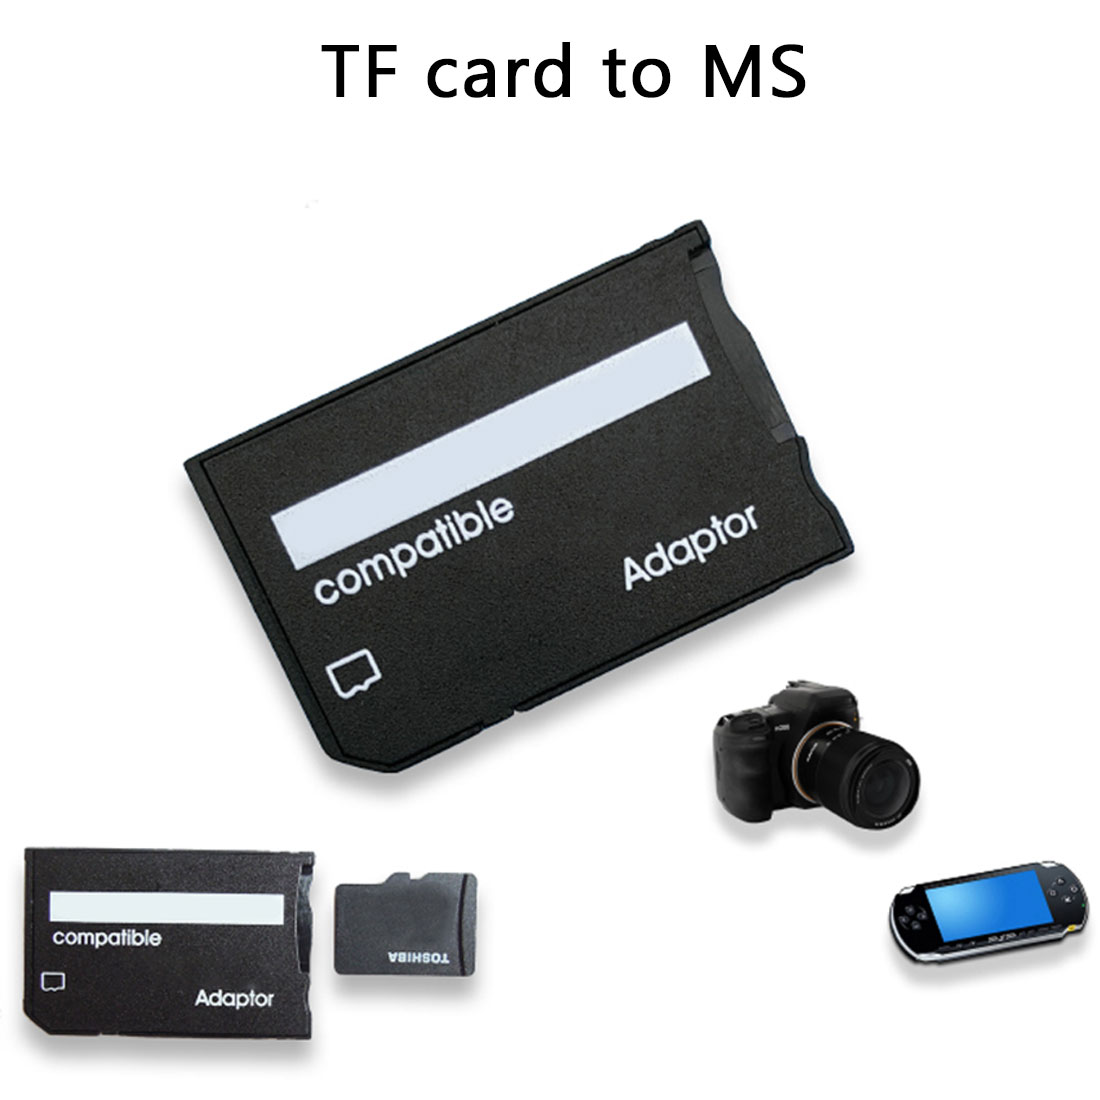 NOYOKERE Top Quality TF Card Reader Memory Stick Mini Micro SD Card Adapter For MS Card MS Pro Duo Adapter Converter Card Case